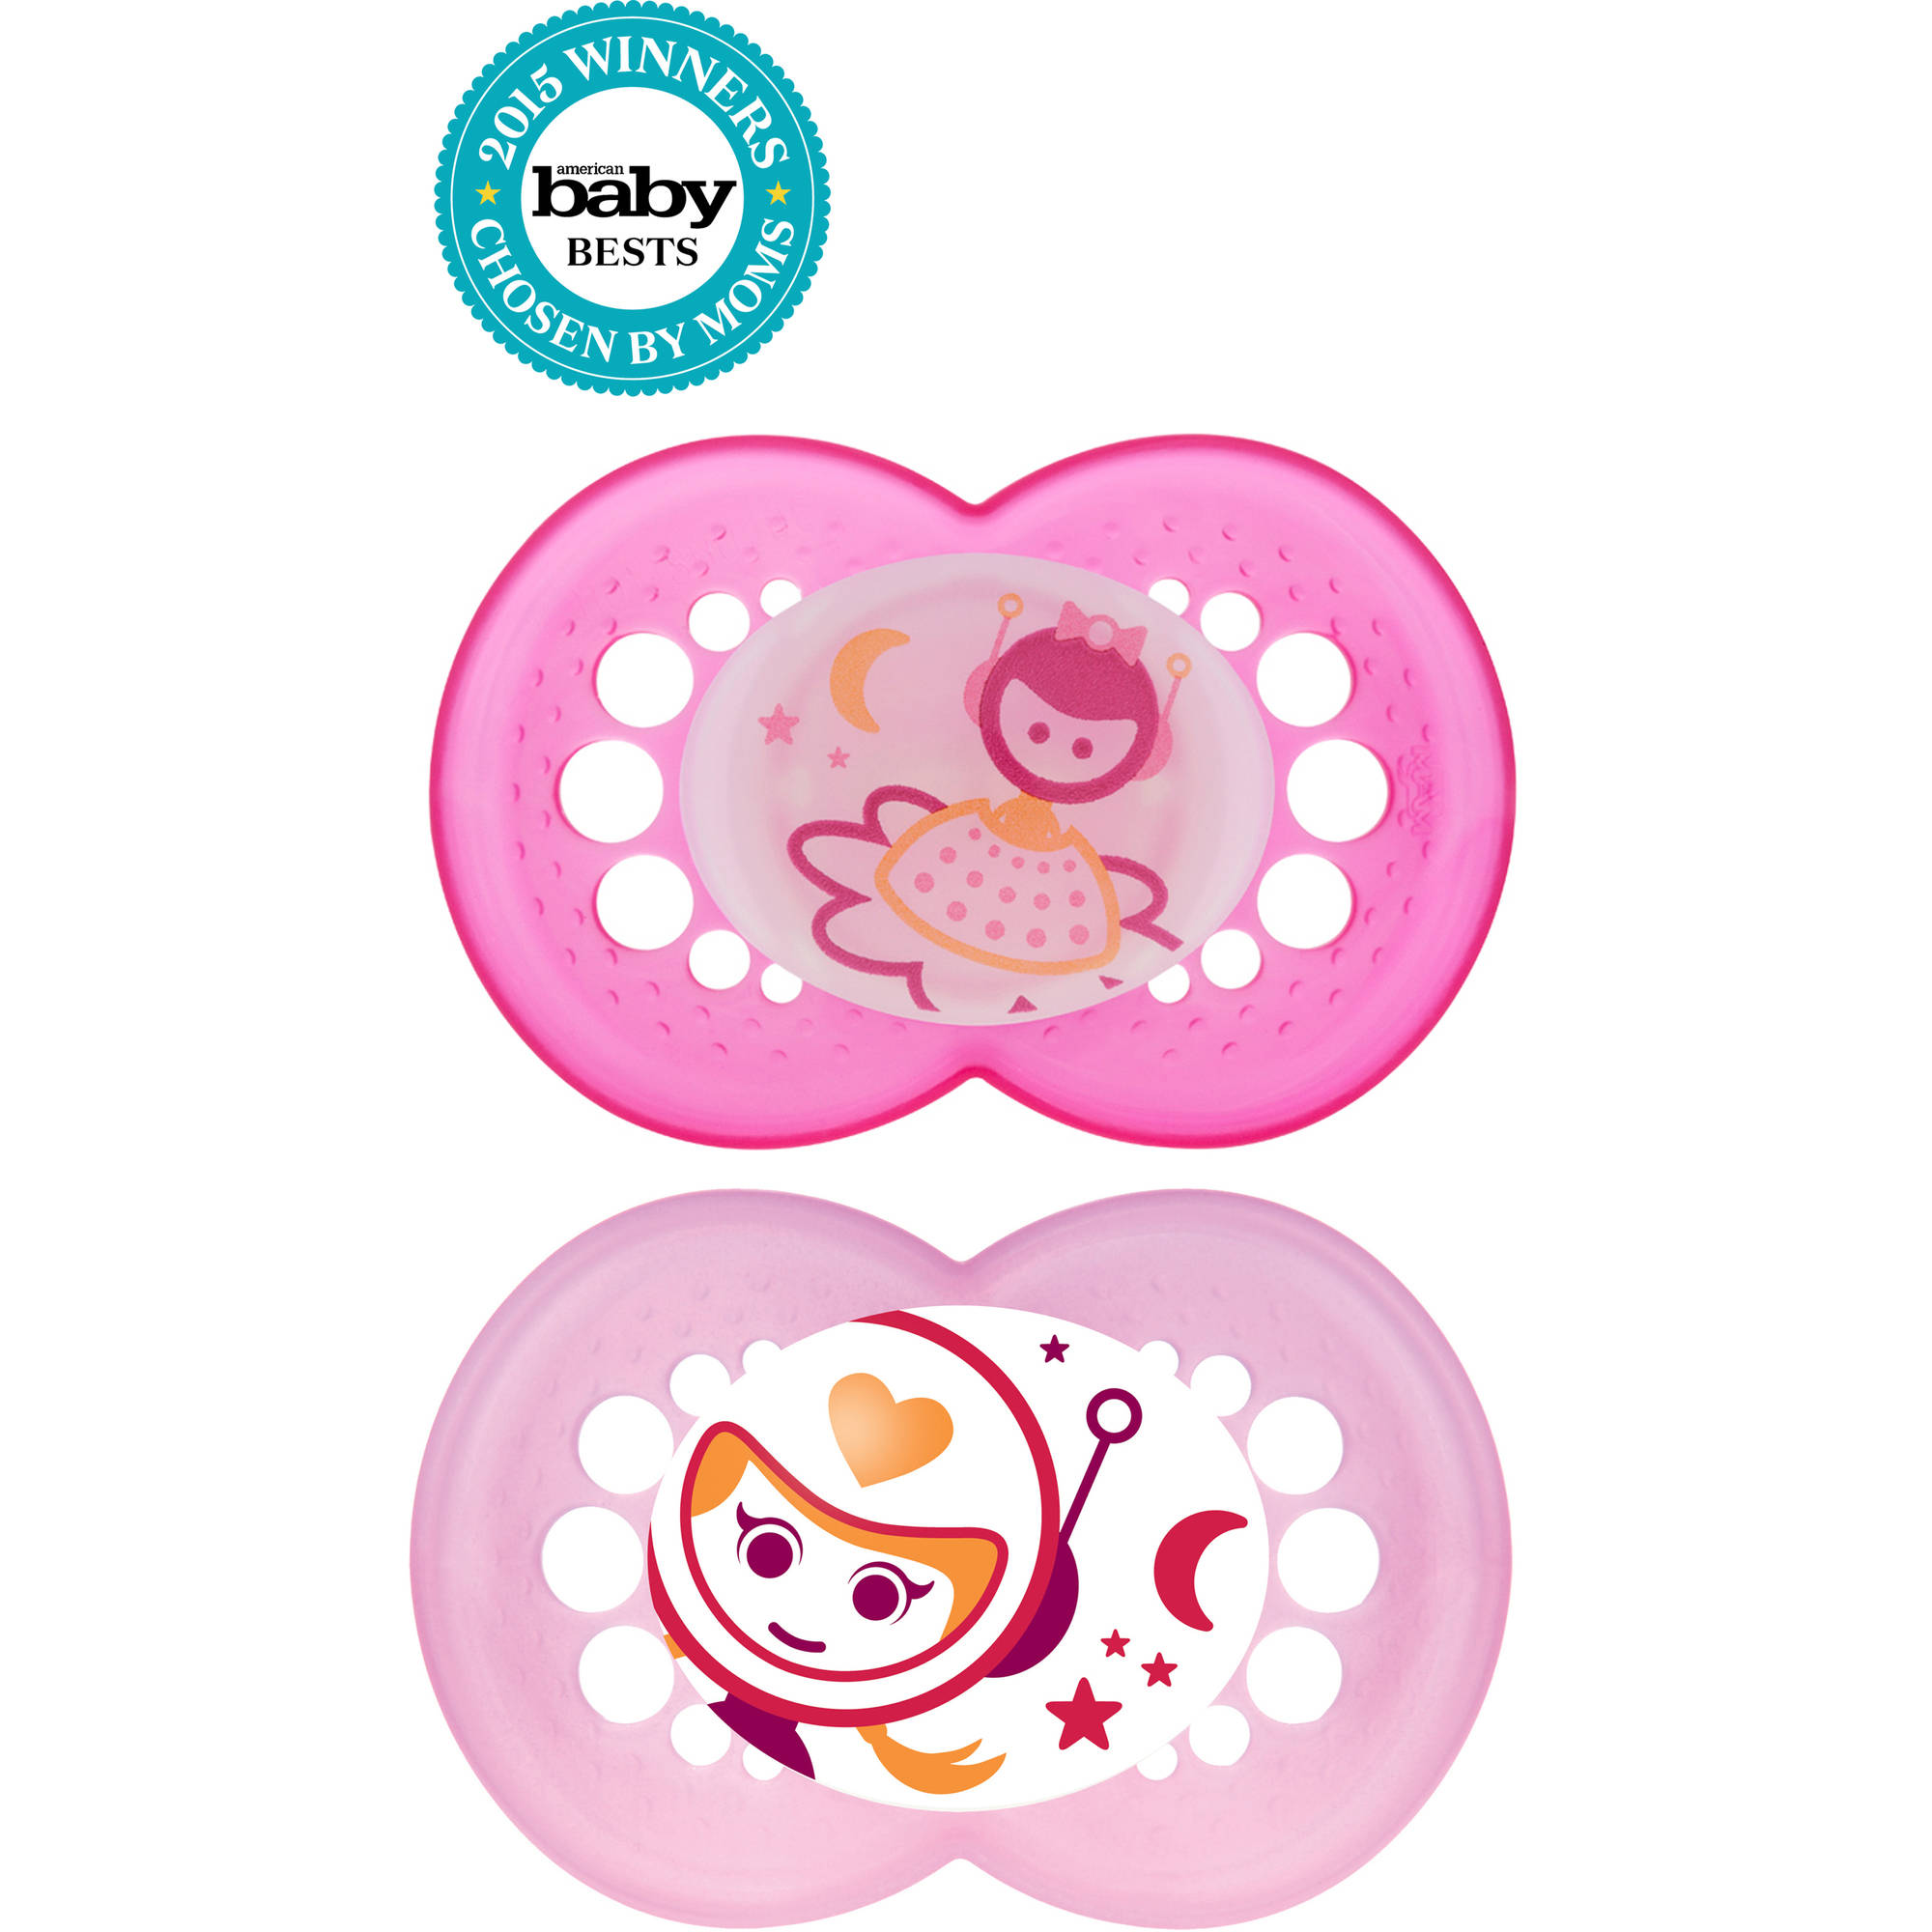 MAM Glow in the Dark Night Orthodontic Pacifier, 6+ Months, 2-Count, Girl